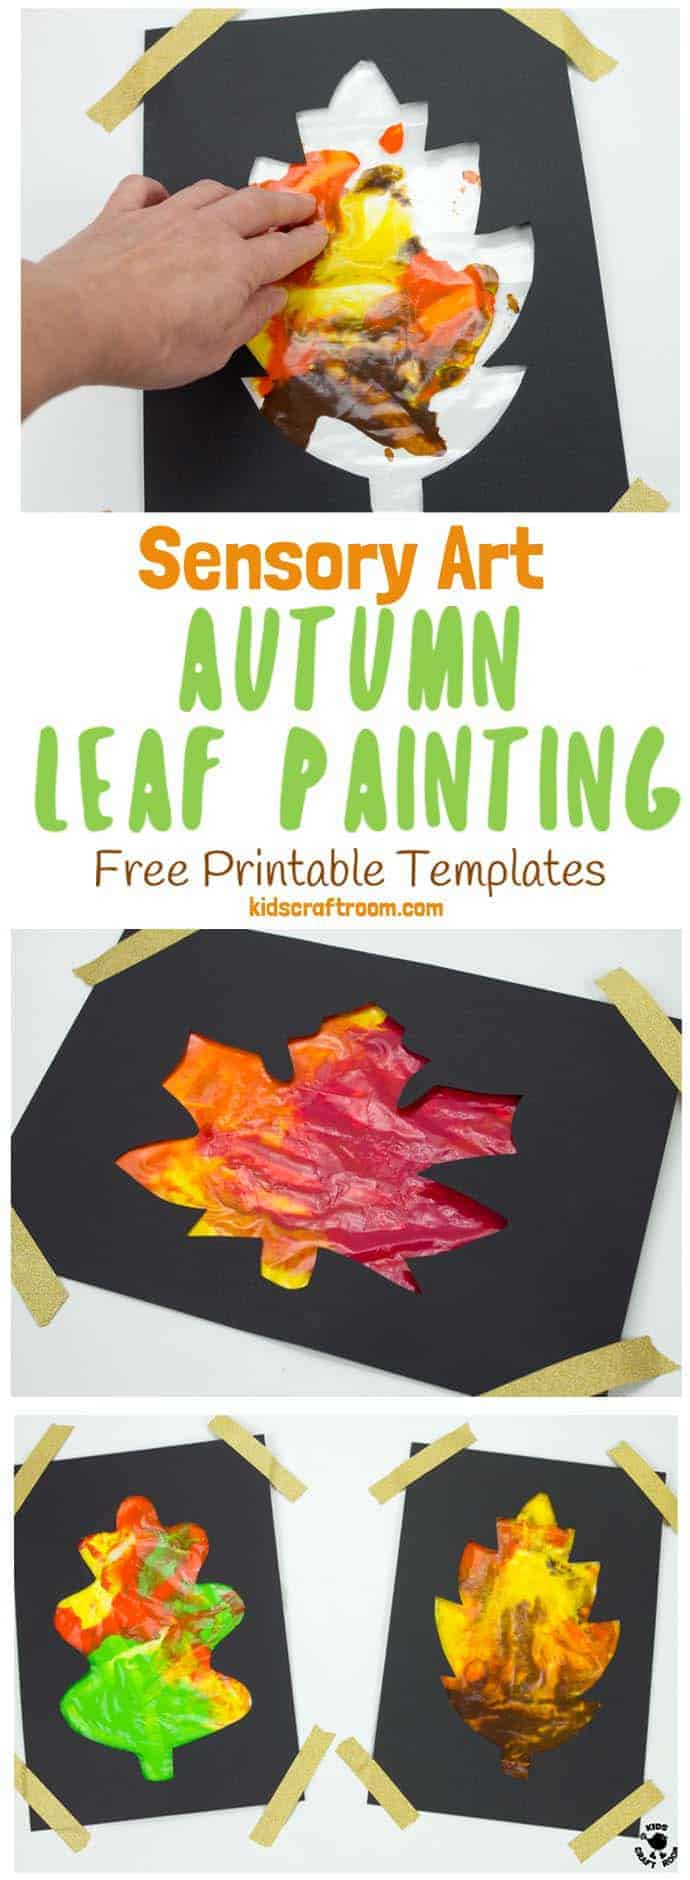 Mess Free Sensory Autumn Leaf Painting is a wonderful activity to explore the changing colours of the season and engage the senses. Kids can watch leaves change colour right in front of their eyes with this hands-on Autumn art idea. (6 Free Printable Leaf Templates) #autumn #fall #autumncrafts #fallcrafts #autumnart #fallart #kidscrafts #kidsart #fallactivities #autumnactivities #sensory #sensoryplay #sensoryart #painting #kidspainting #kidscraftroom